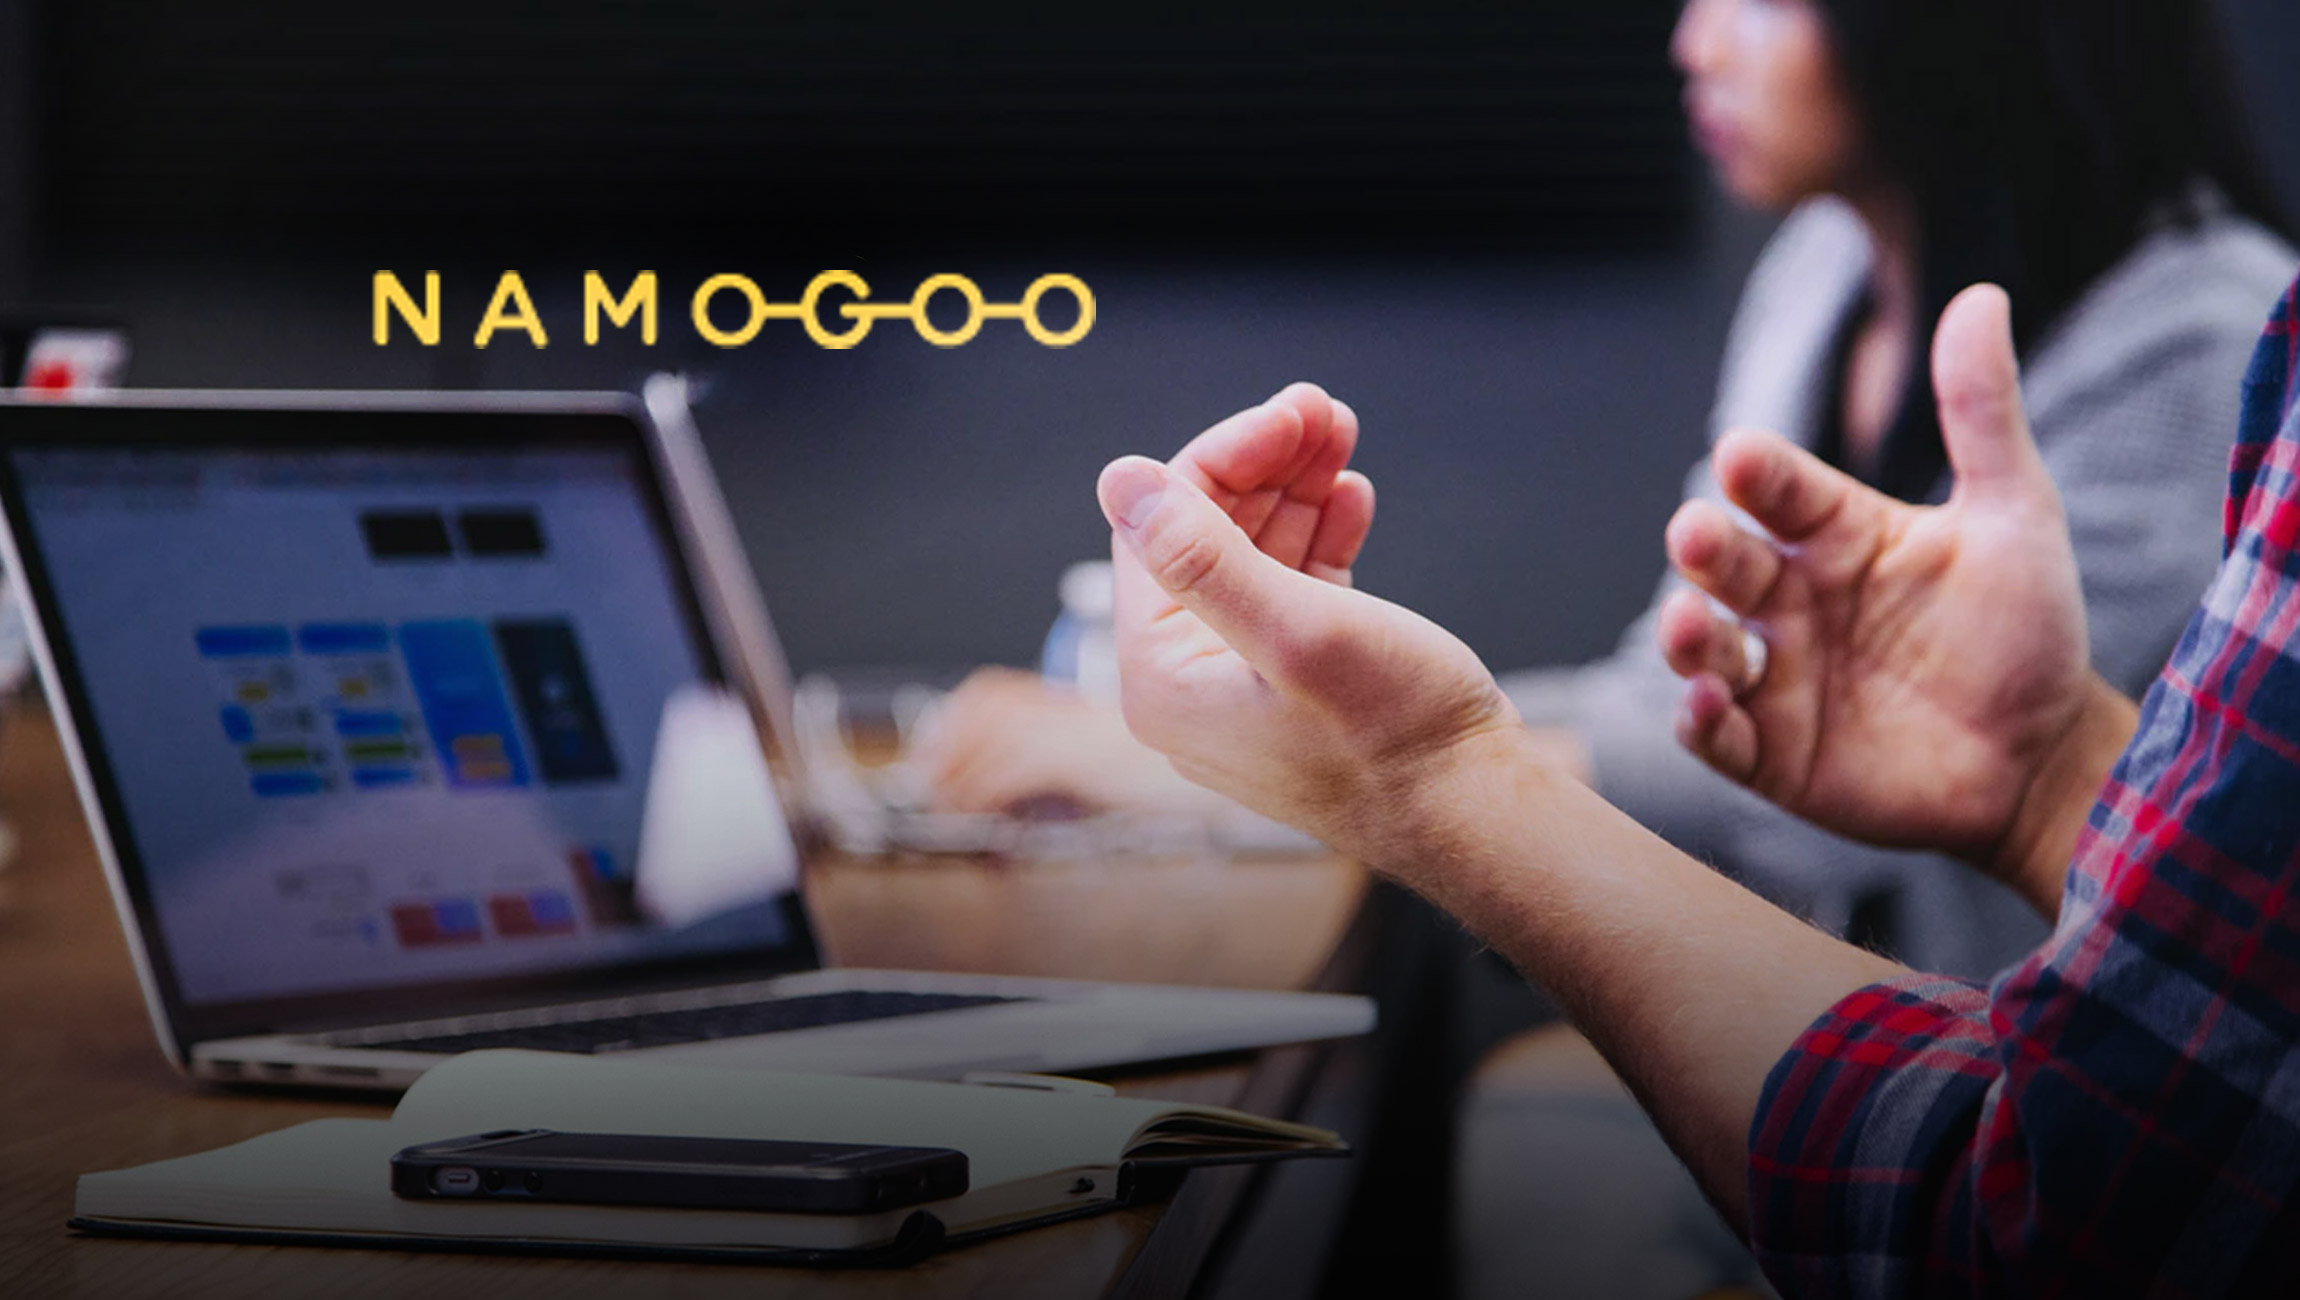 Things Remembered Increases Online Conversion Rate by 5.15% with Namogoo